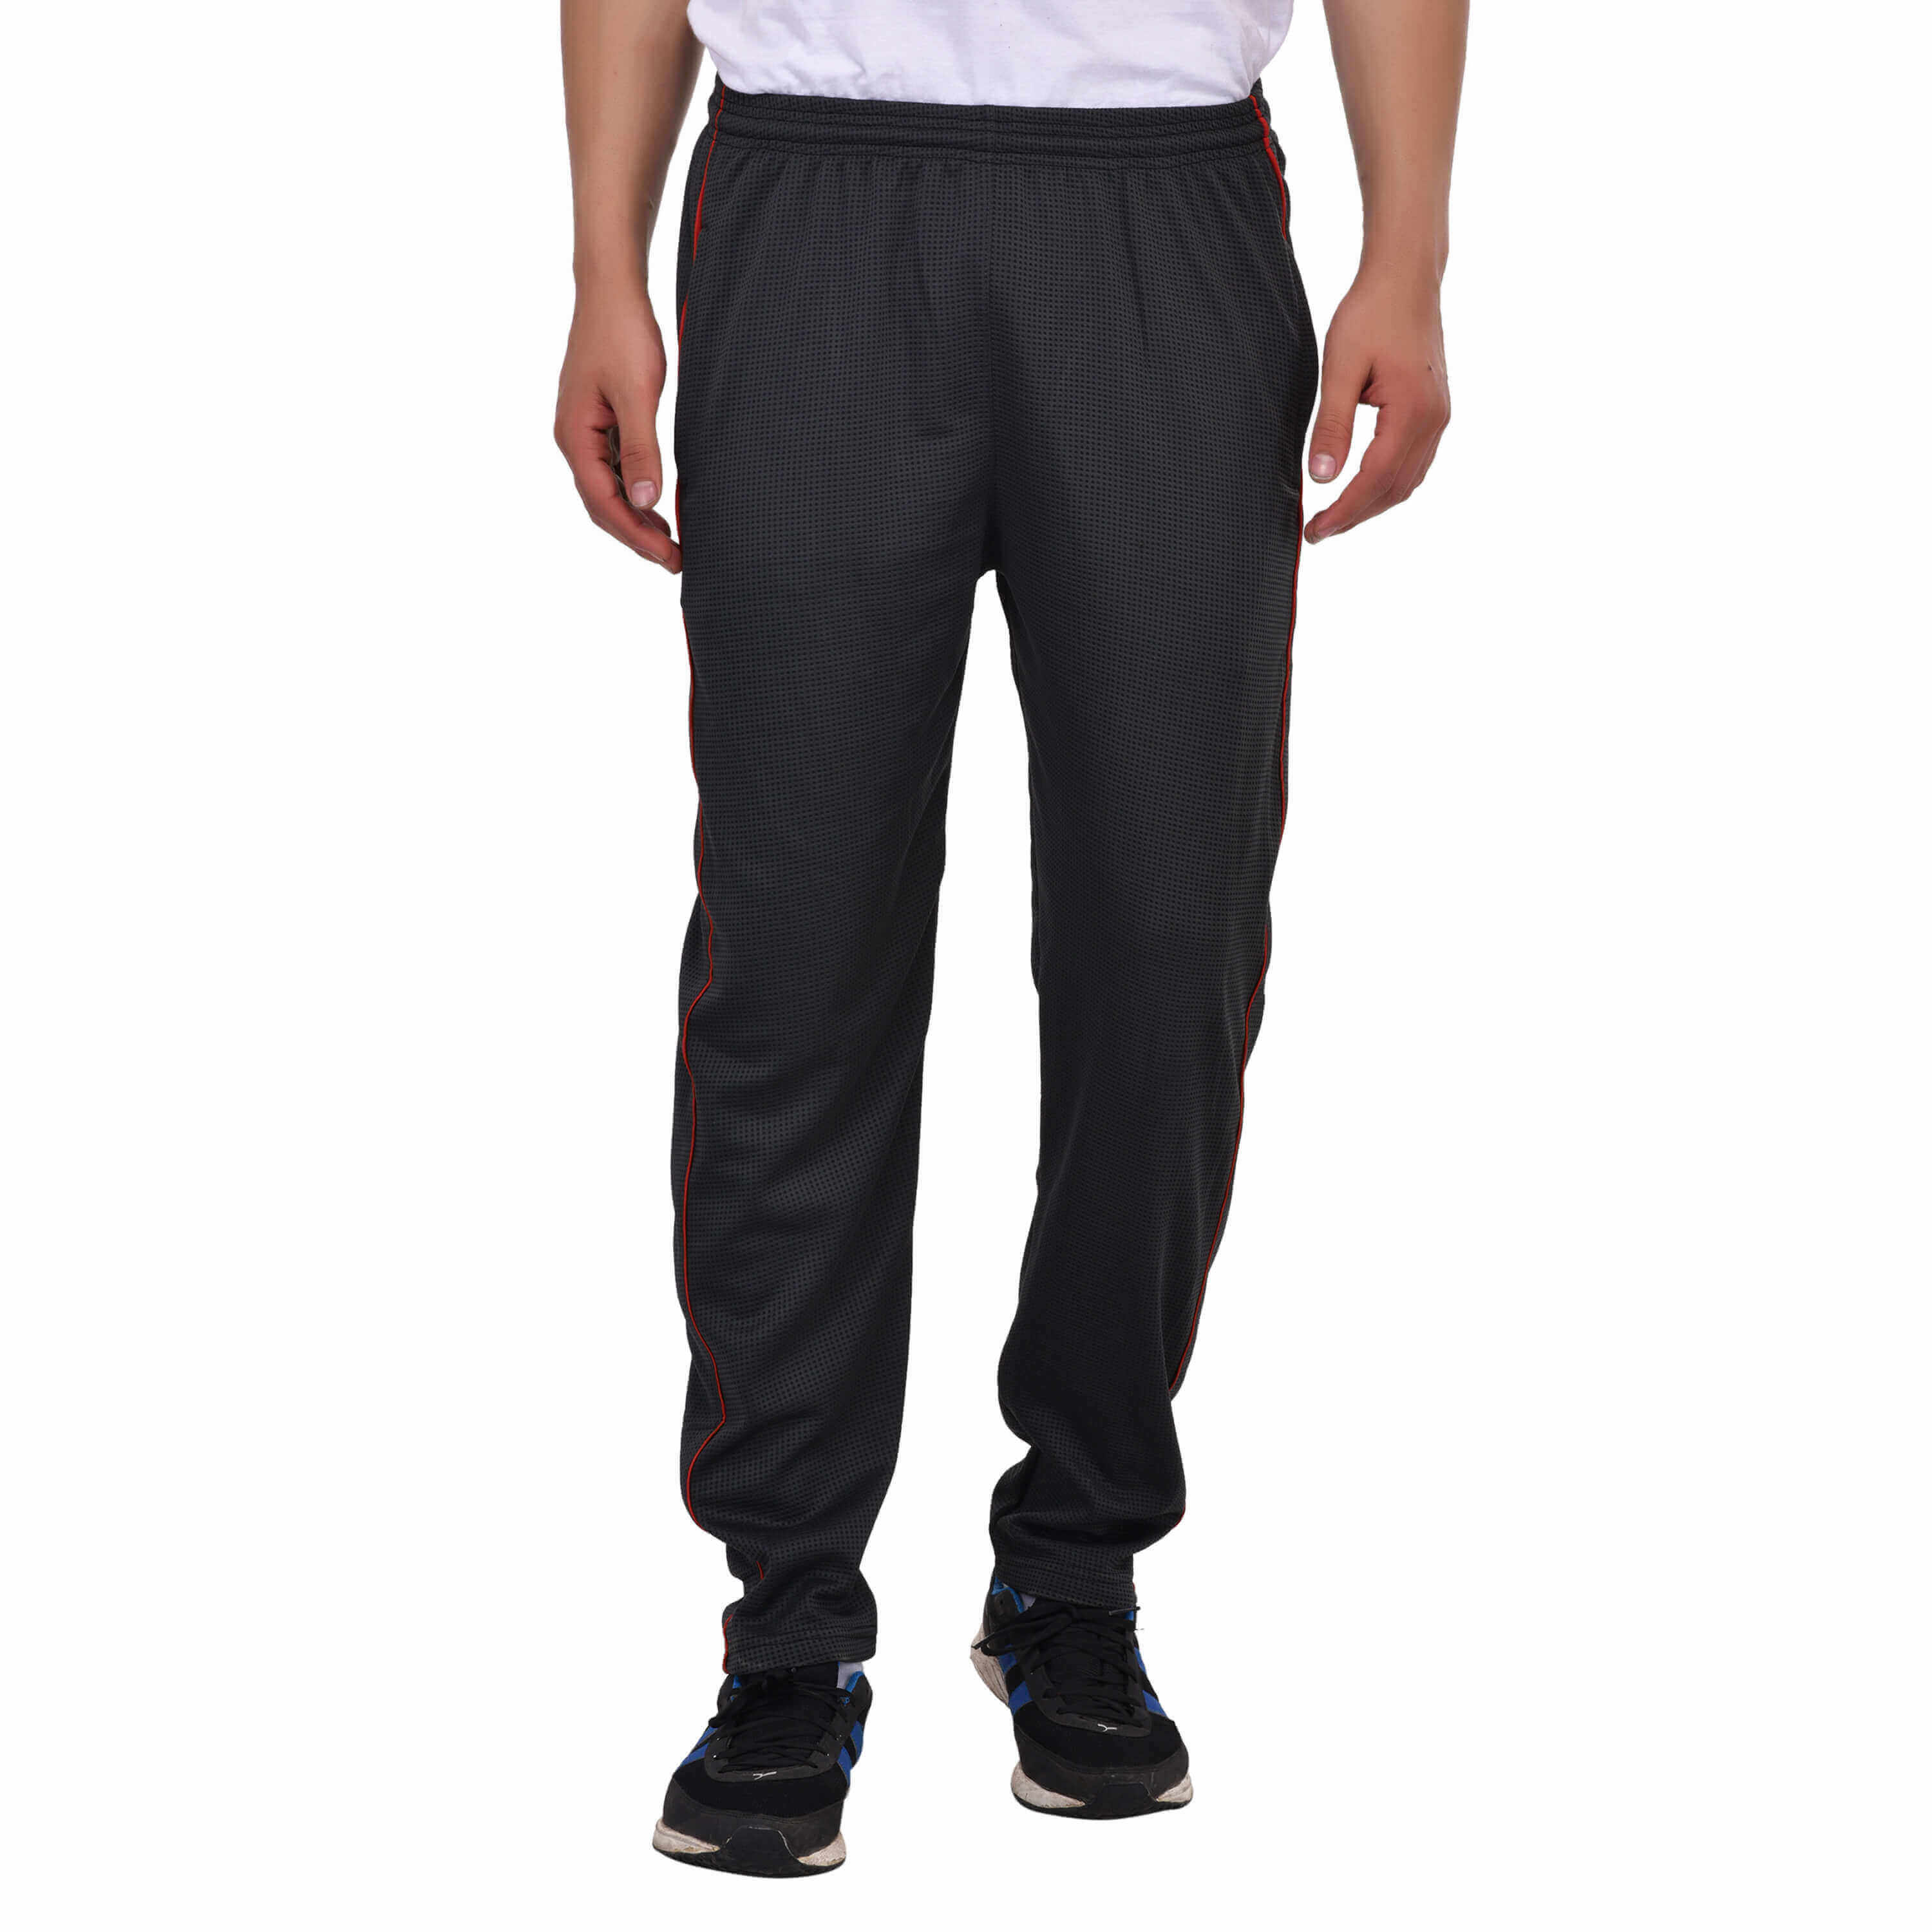 Gym Trousers Manufacturers in Bahrain